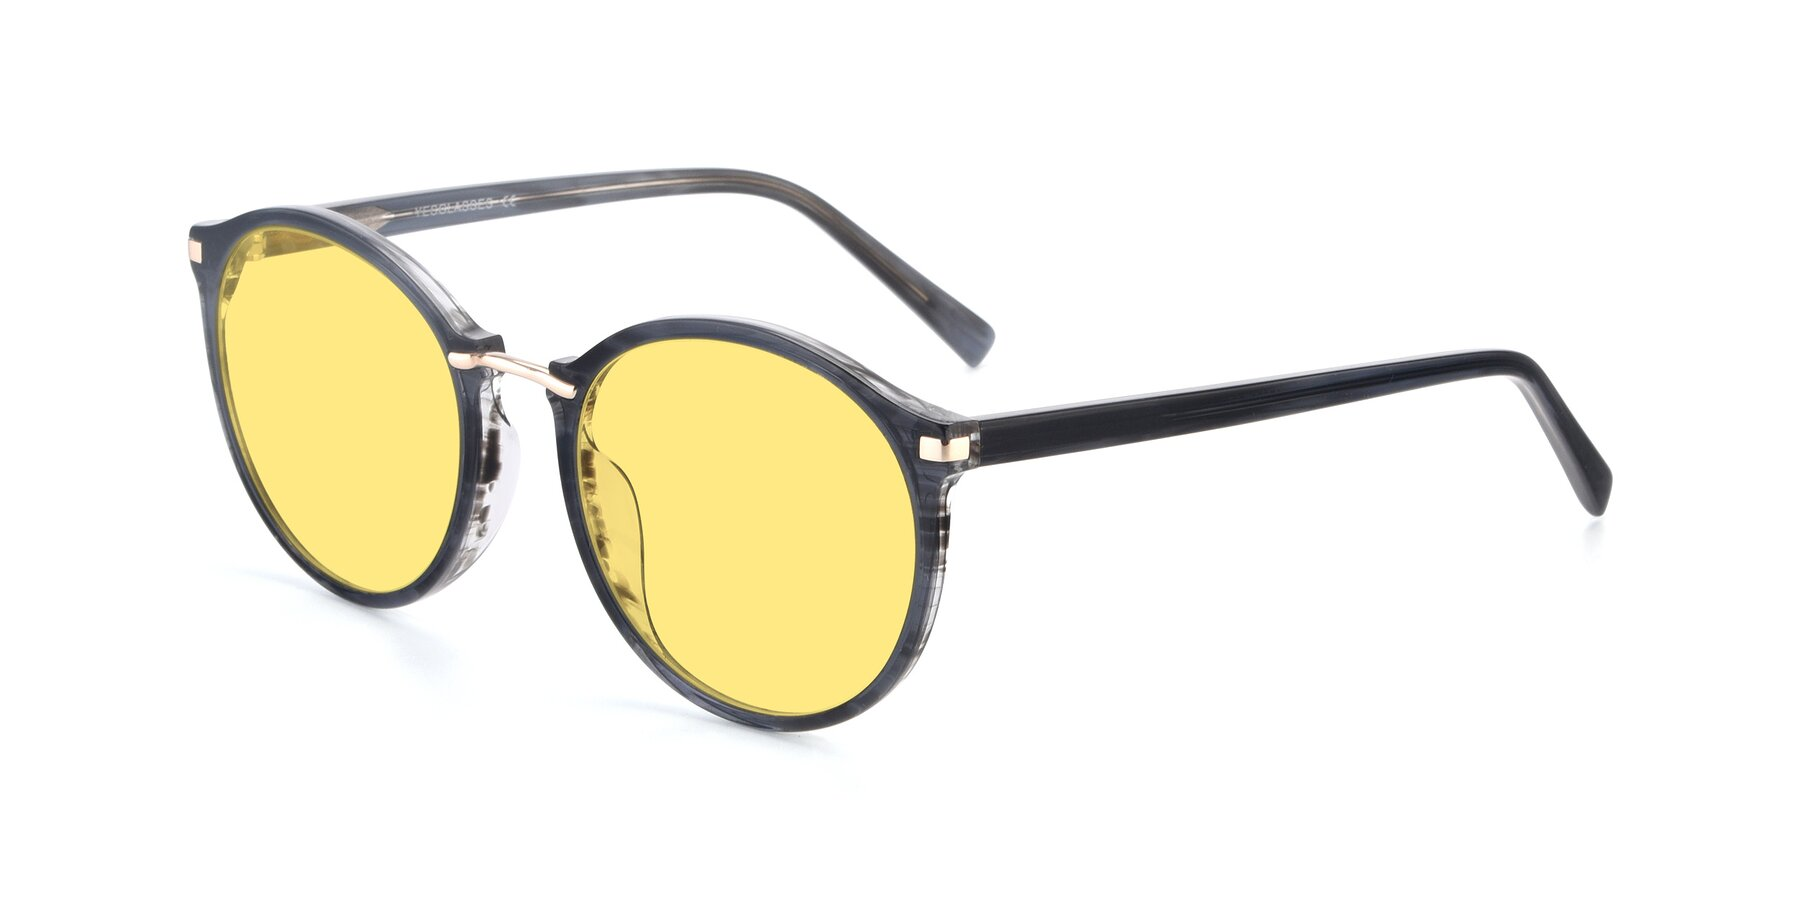 Angle of Casper in Translucent Black with Medium Yellow Tinted Lenses